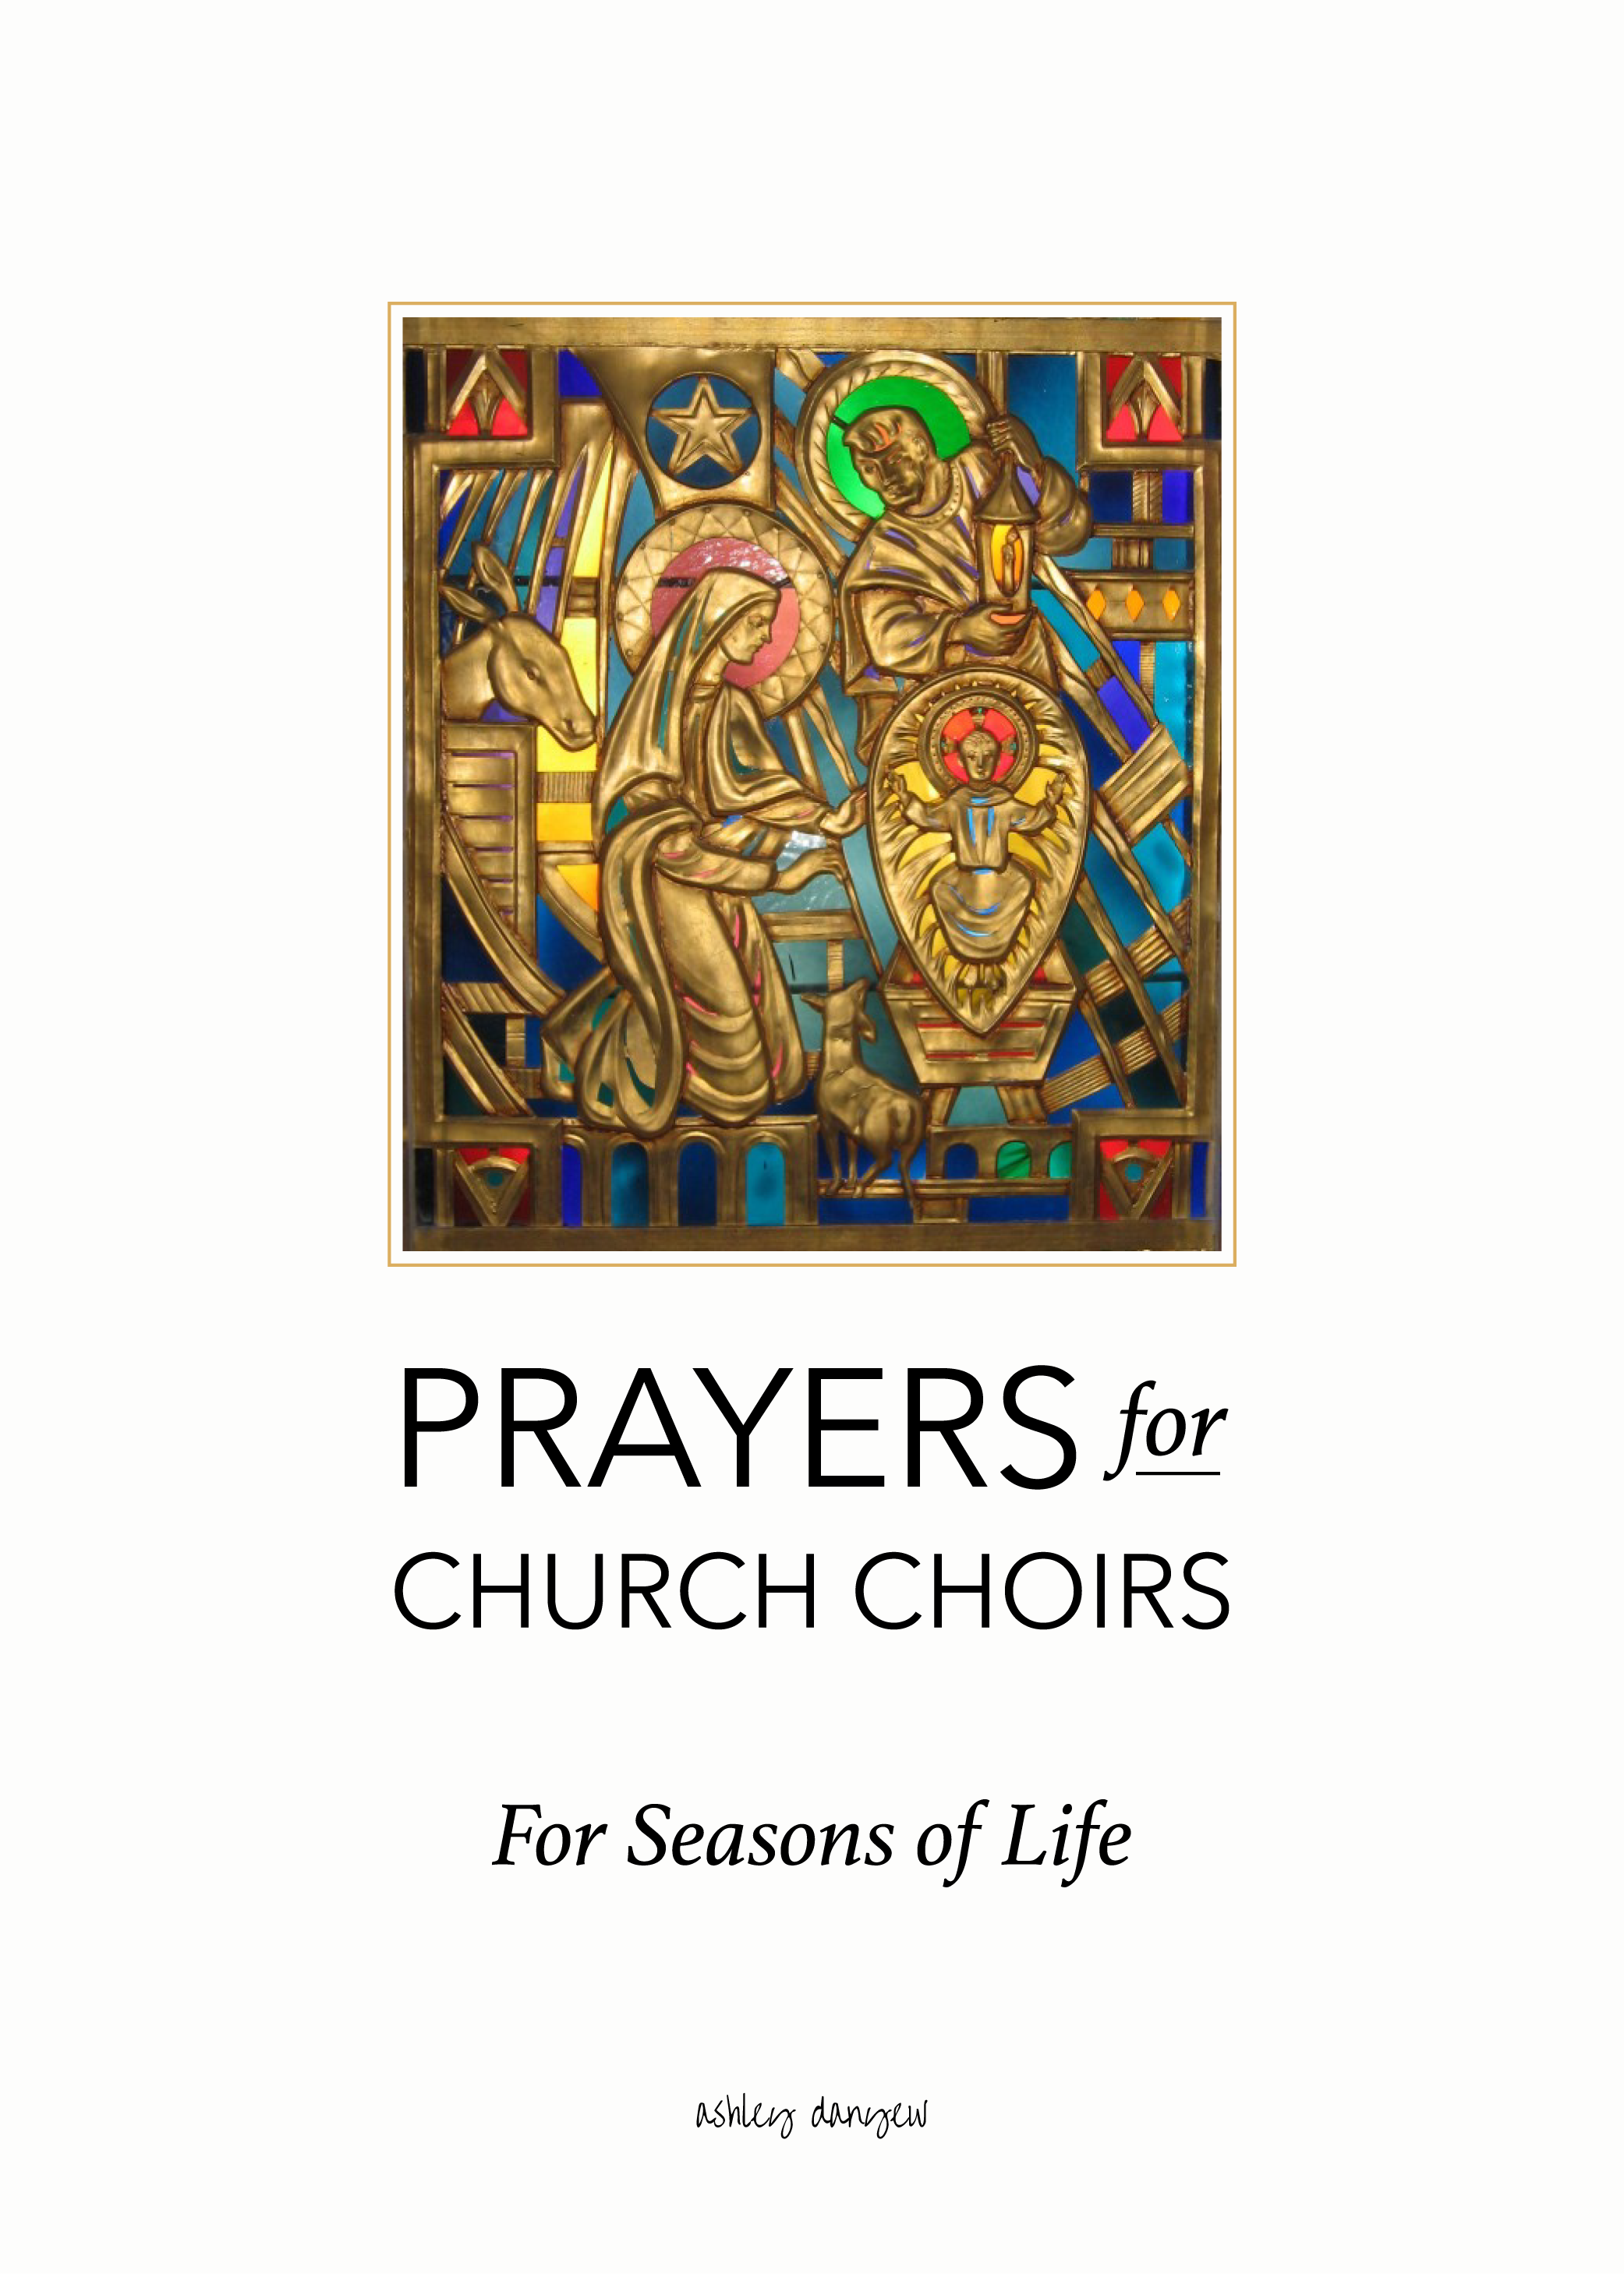 Copy of Prayers for Church Choirs: For Seasons of Life